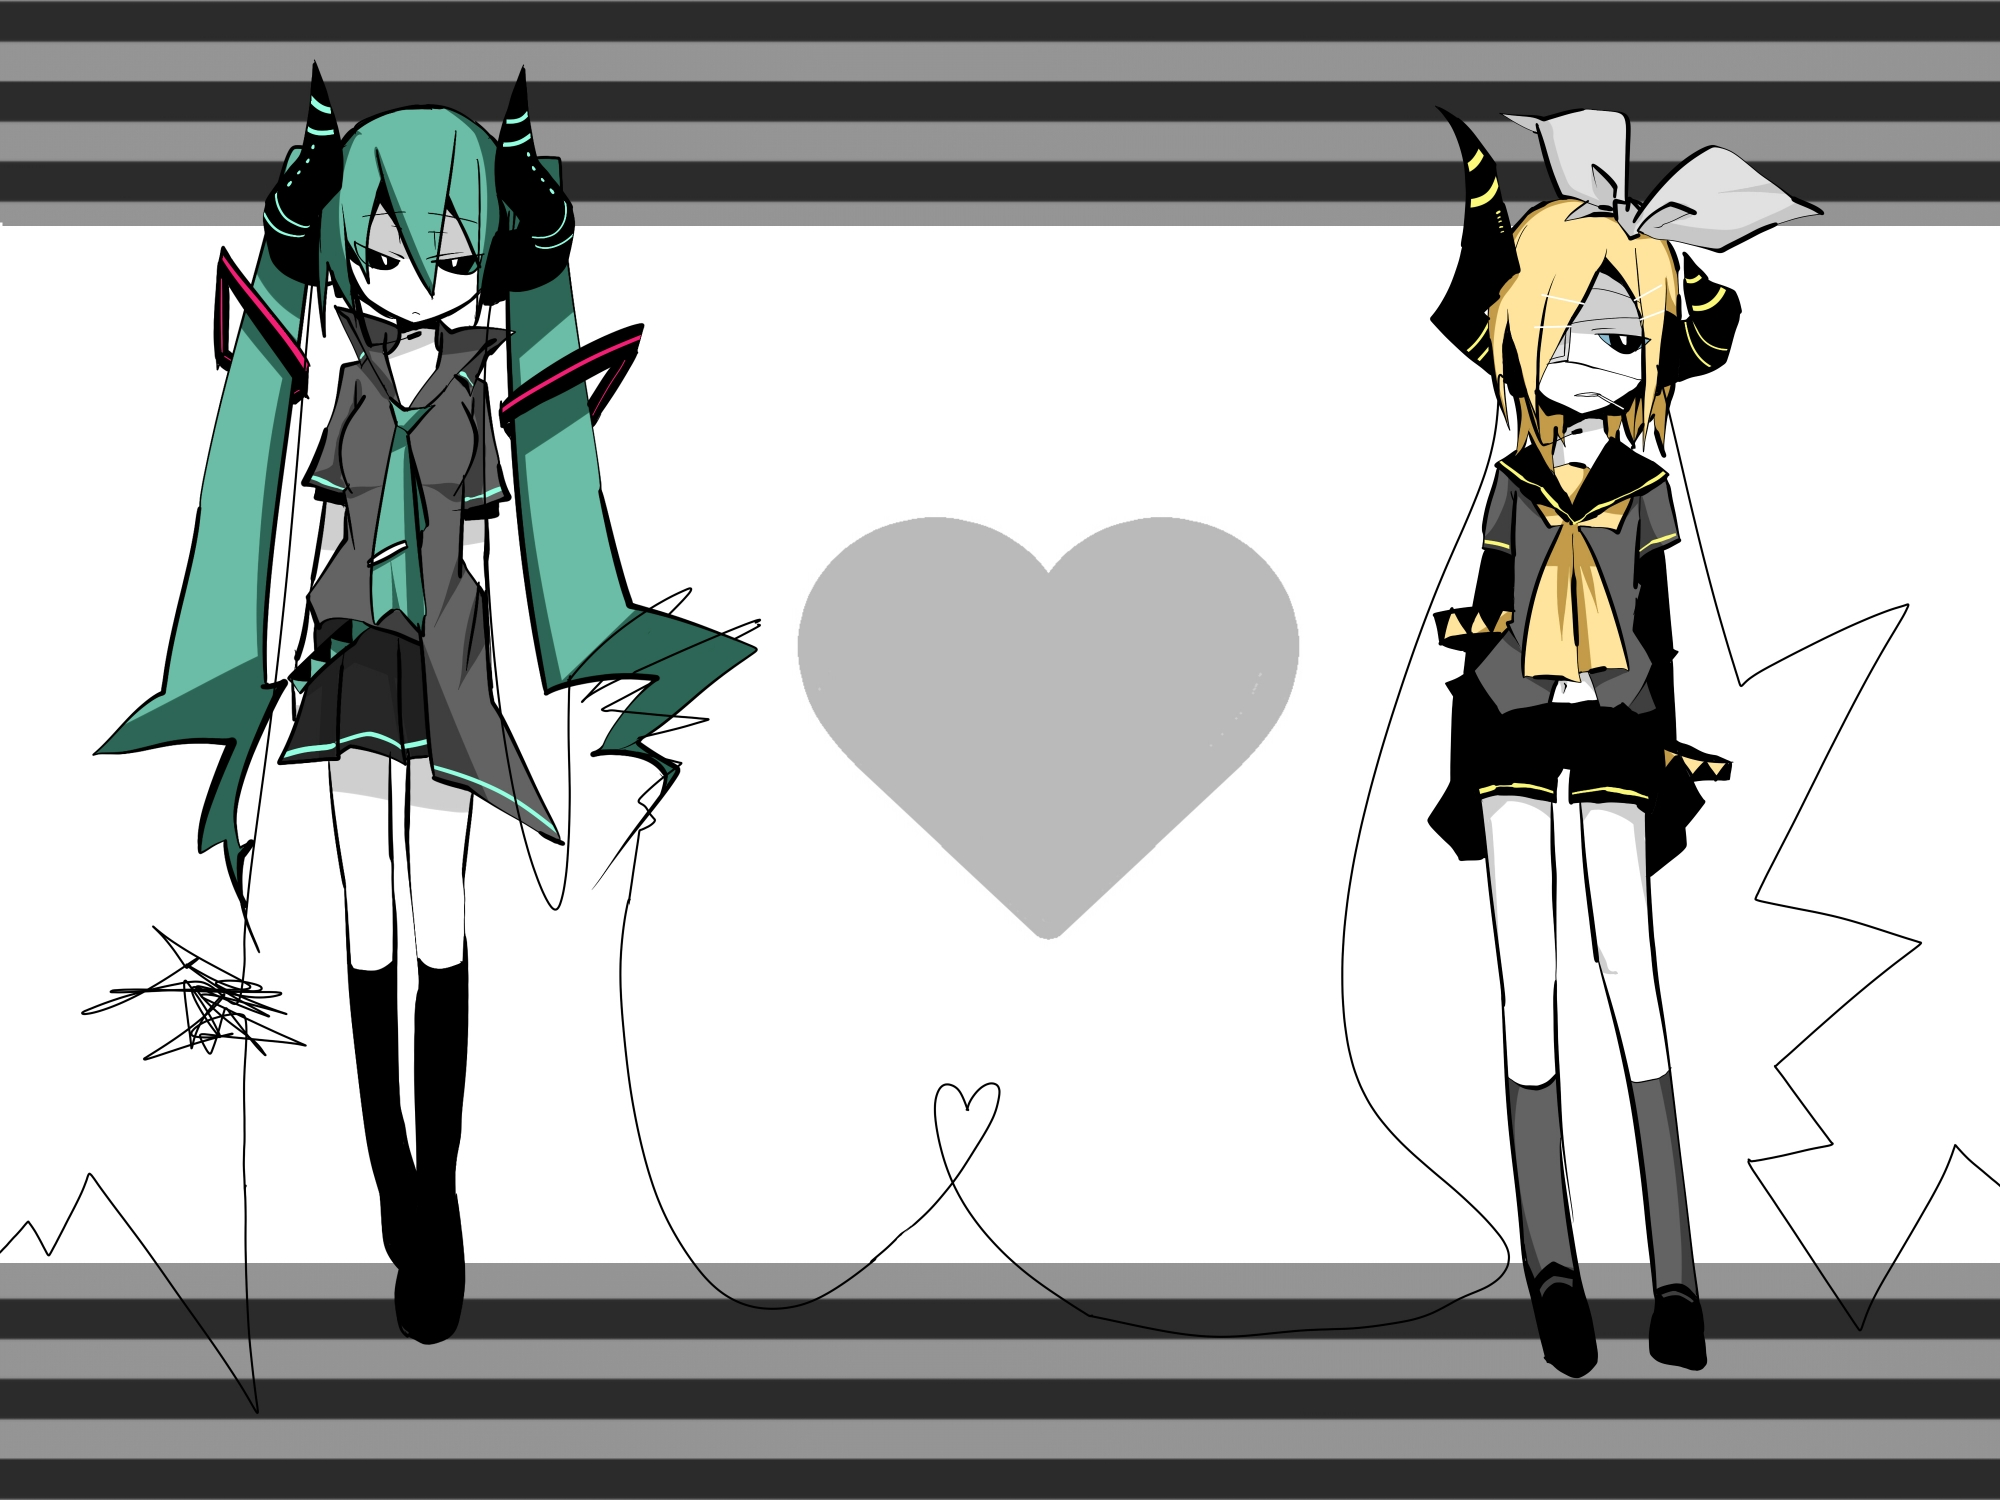 eyepatch hatsune_miku horns kagamine_rin twintails vocaloid